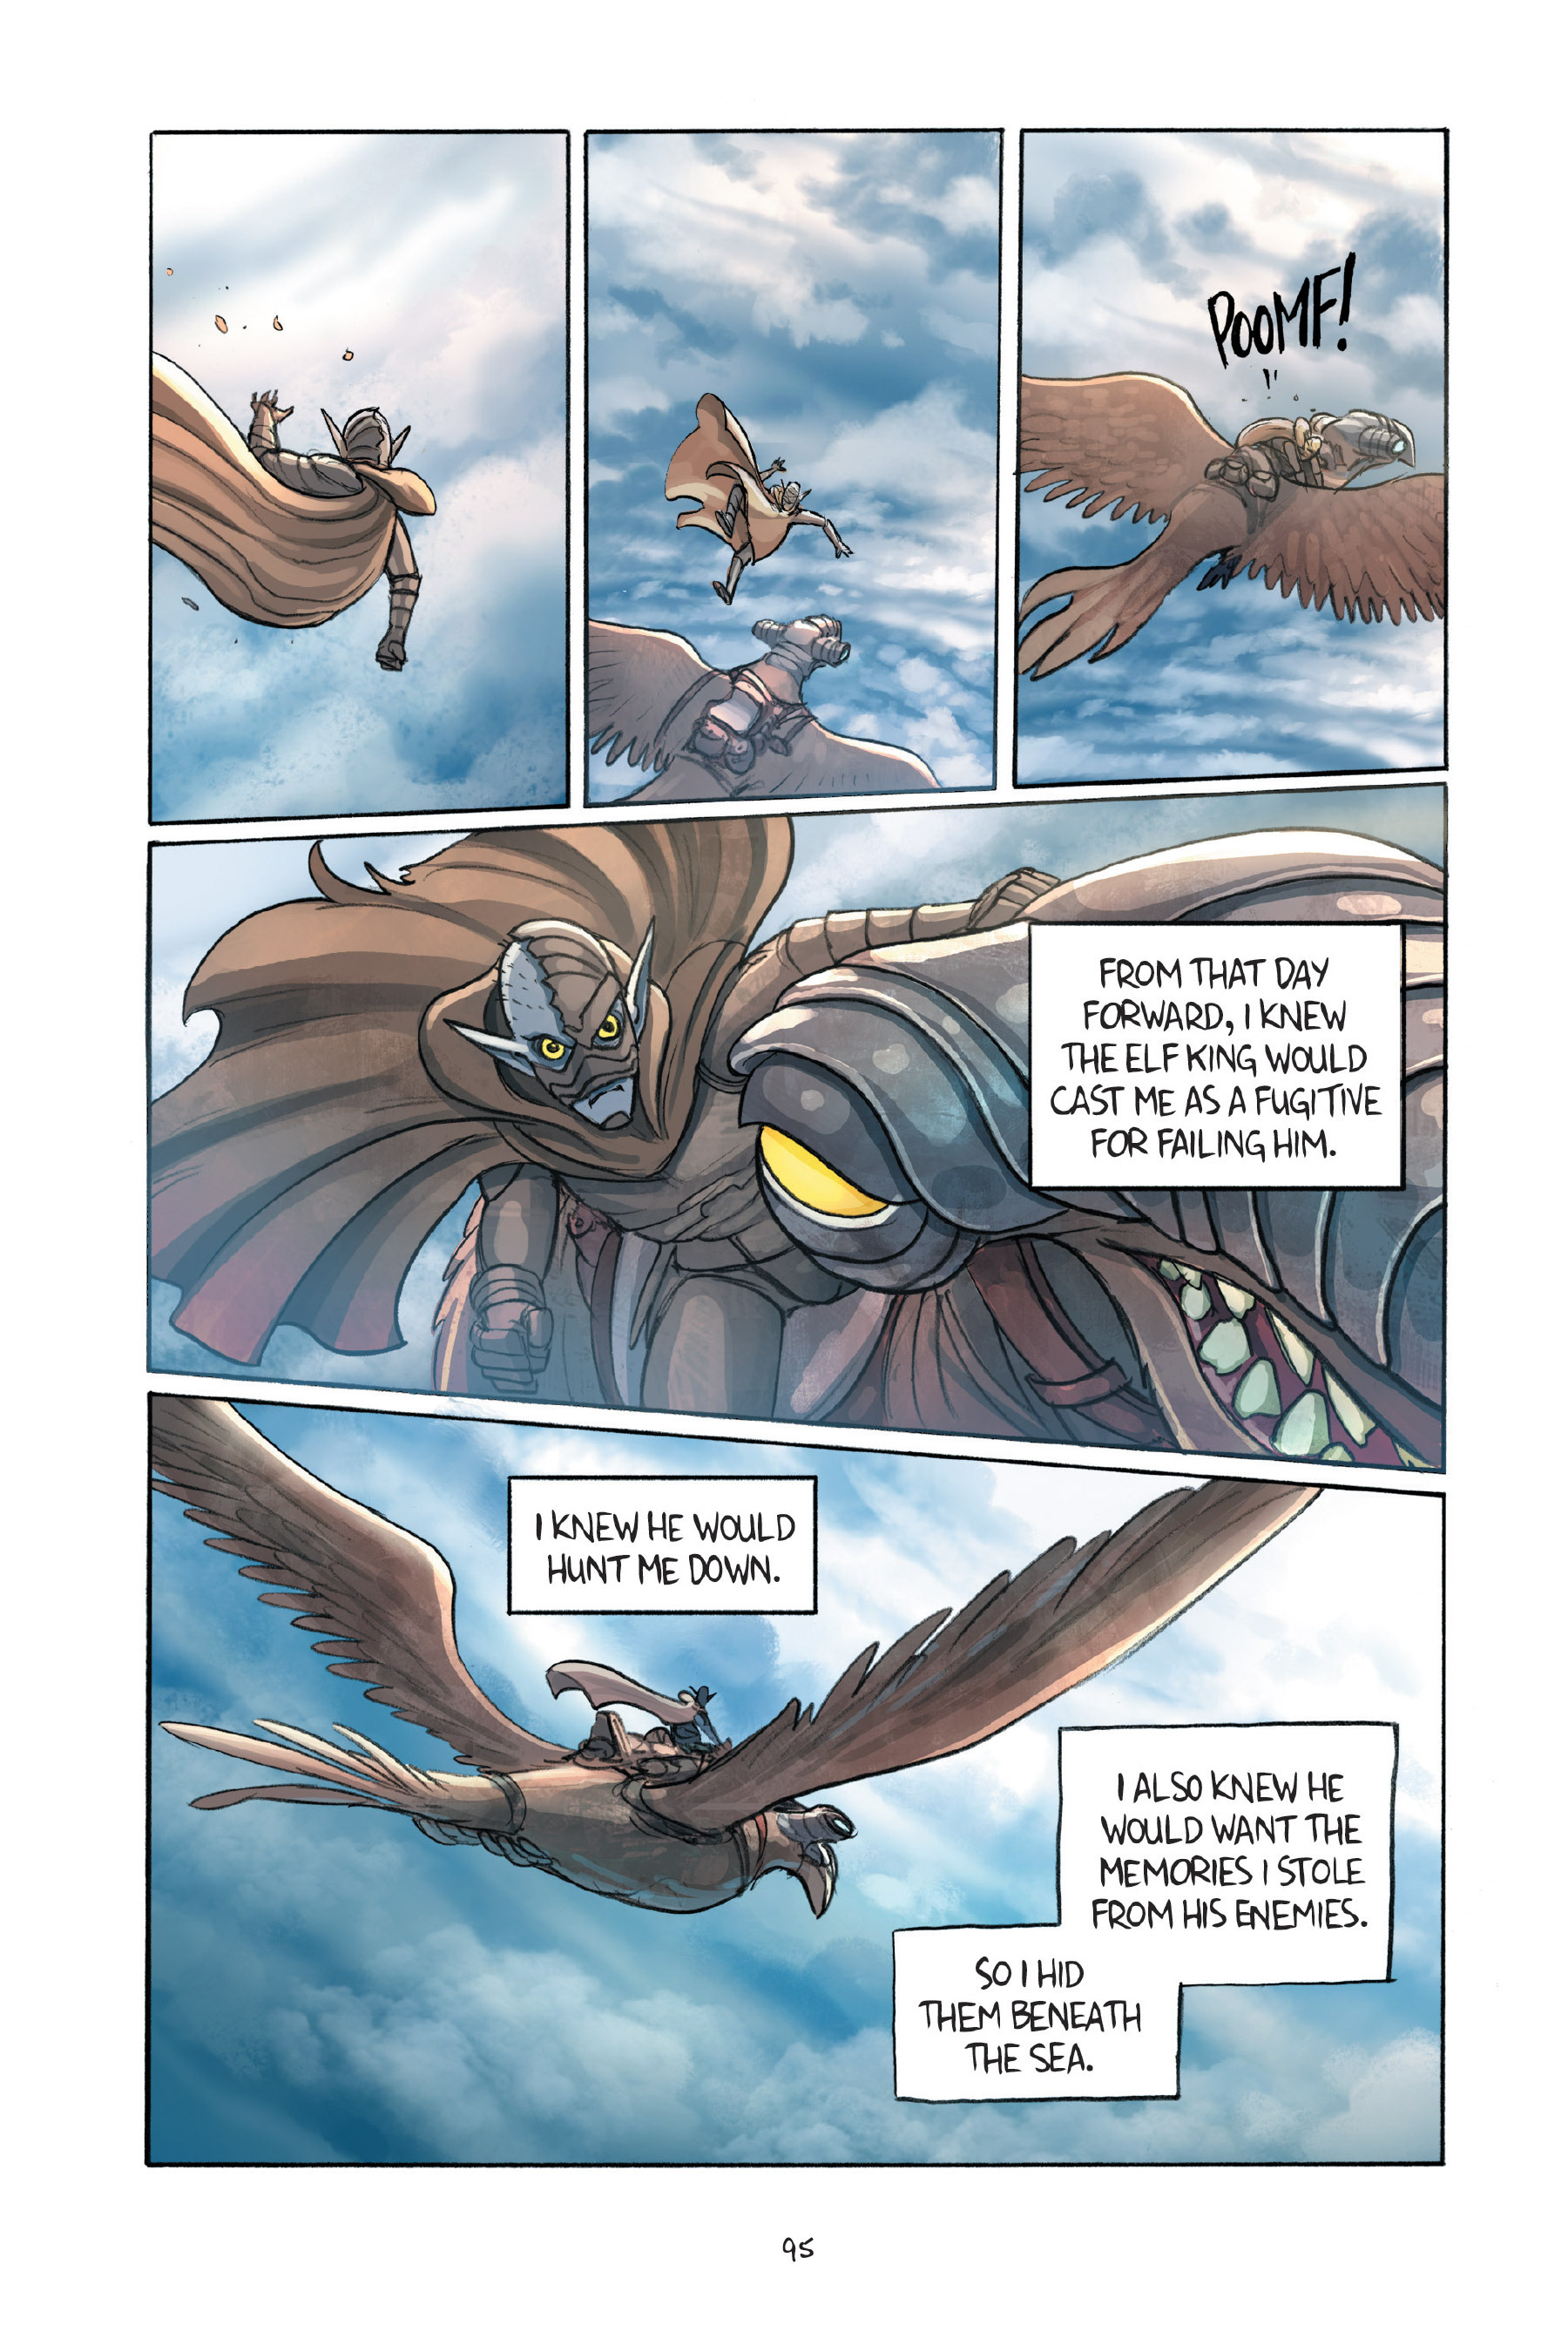 Read online Amulet comic -  Issue #7 - 96